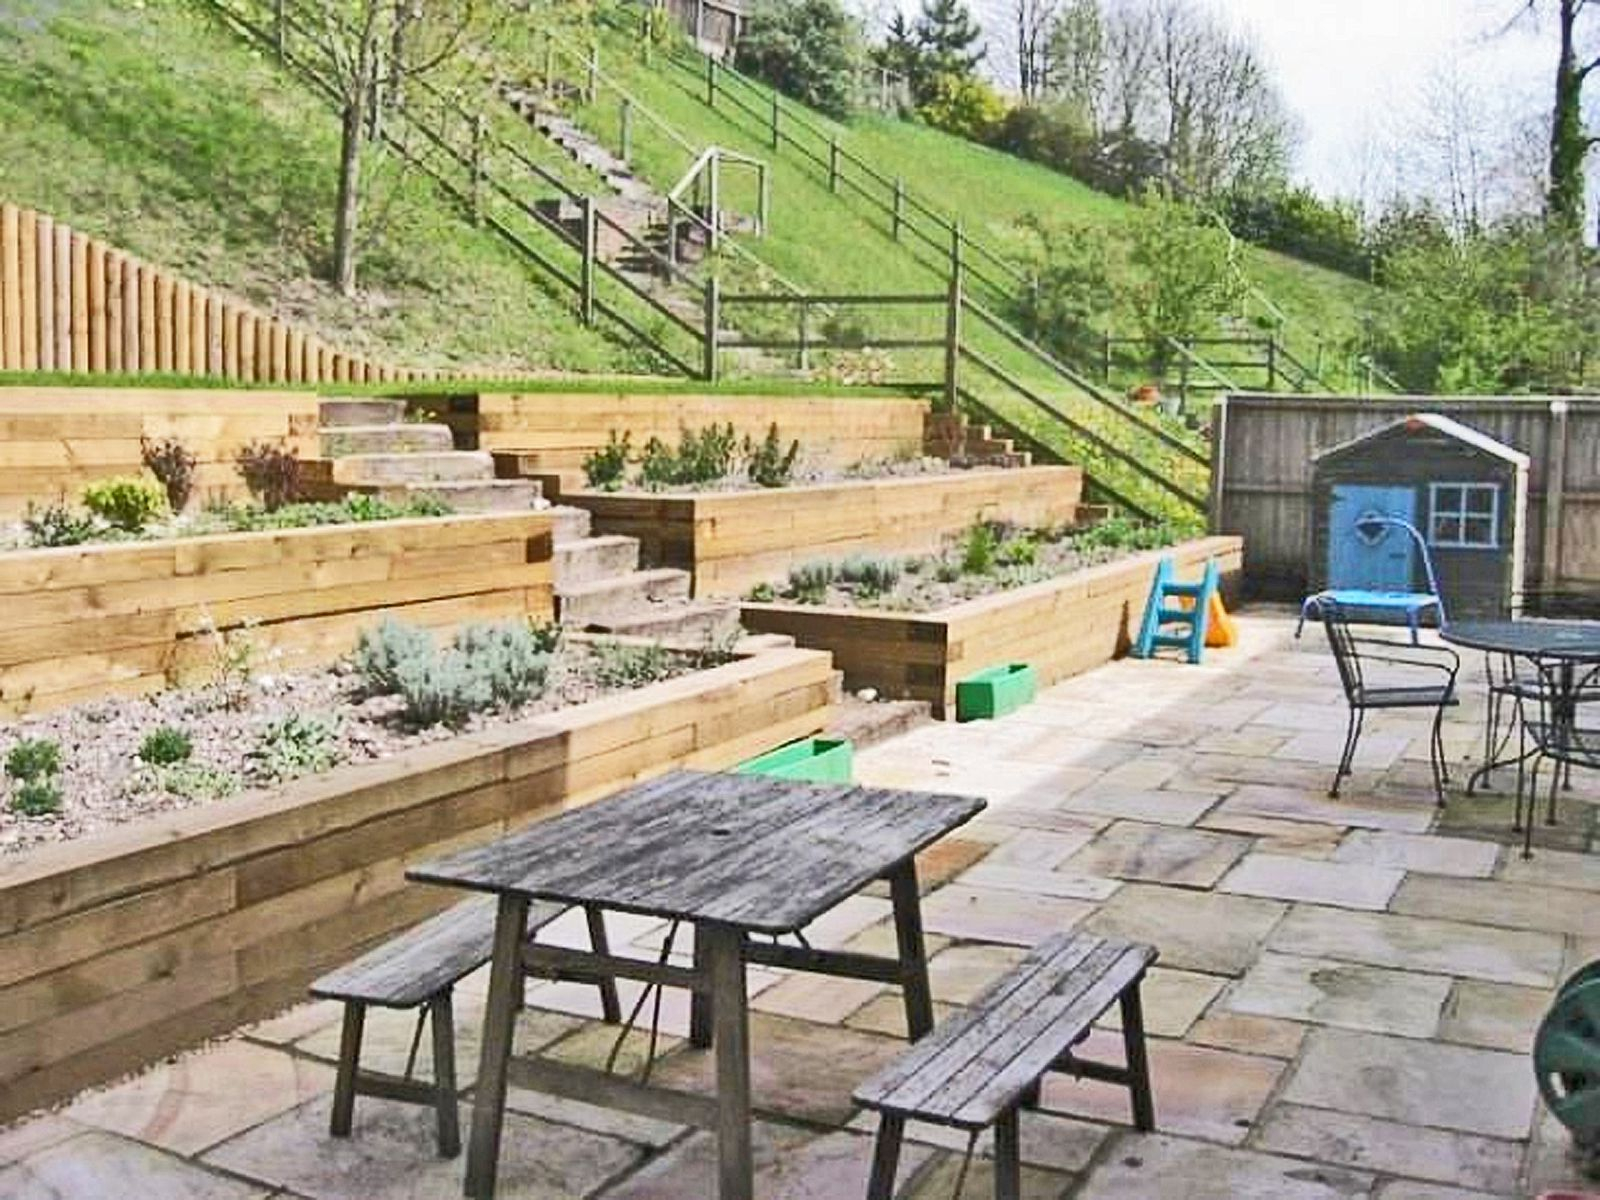 13 Hillside Landscaping Ideas To Maximize Your Yard in Backyard Hill Landscaping Ideas